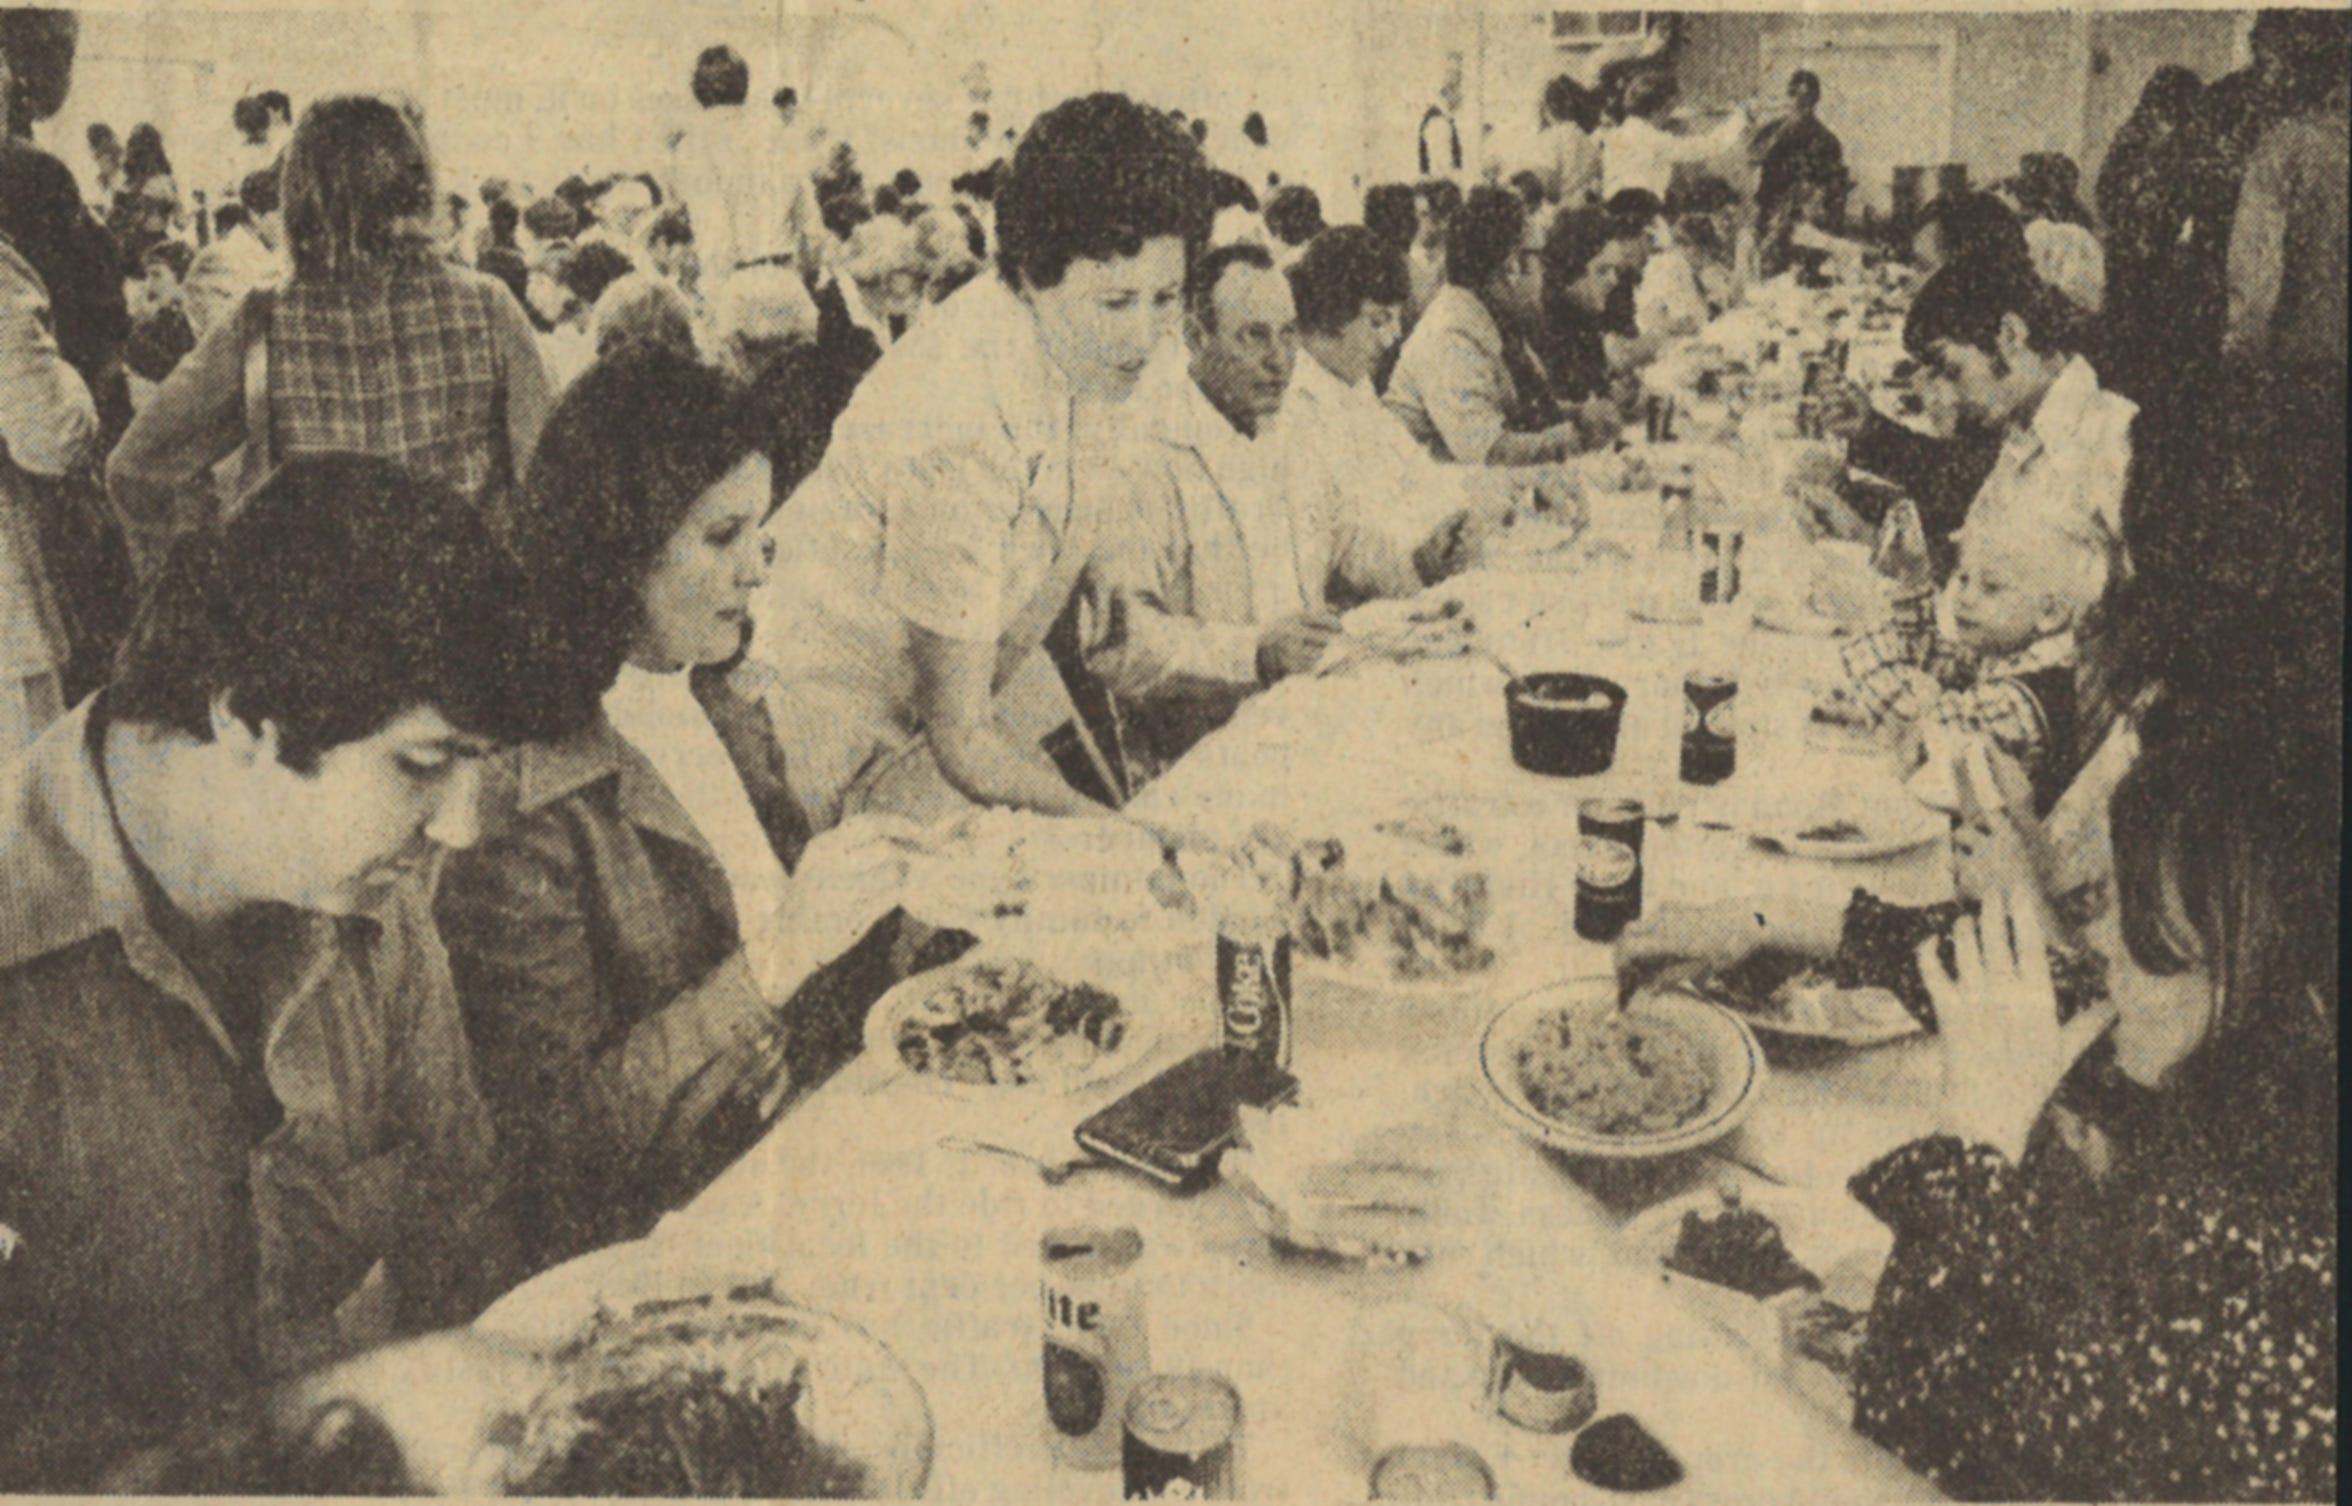 People gather for good food and togetherness at Our Lady of Consolation parish hall in Vattman, Texas on Nov. 27, 1975.